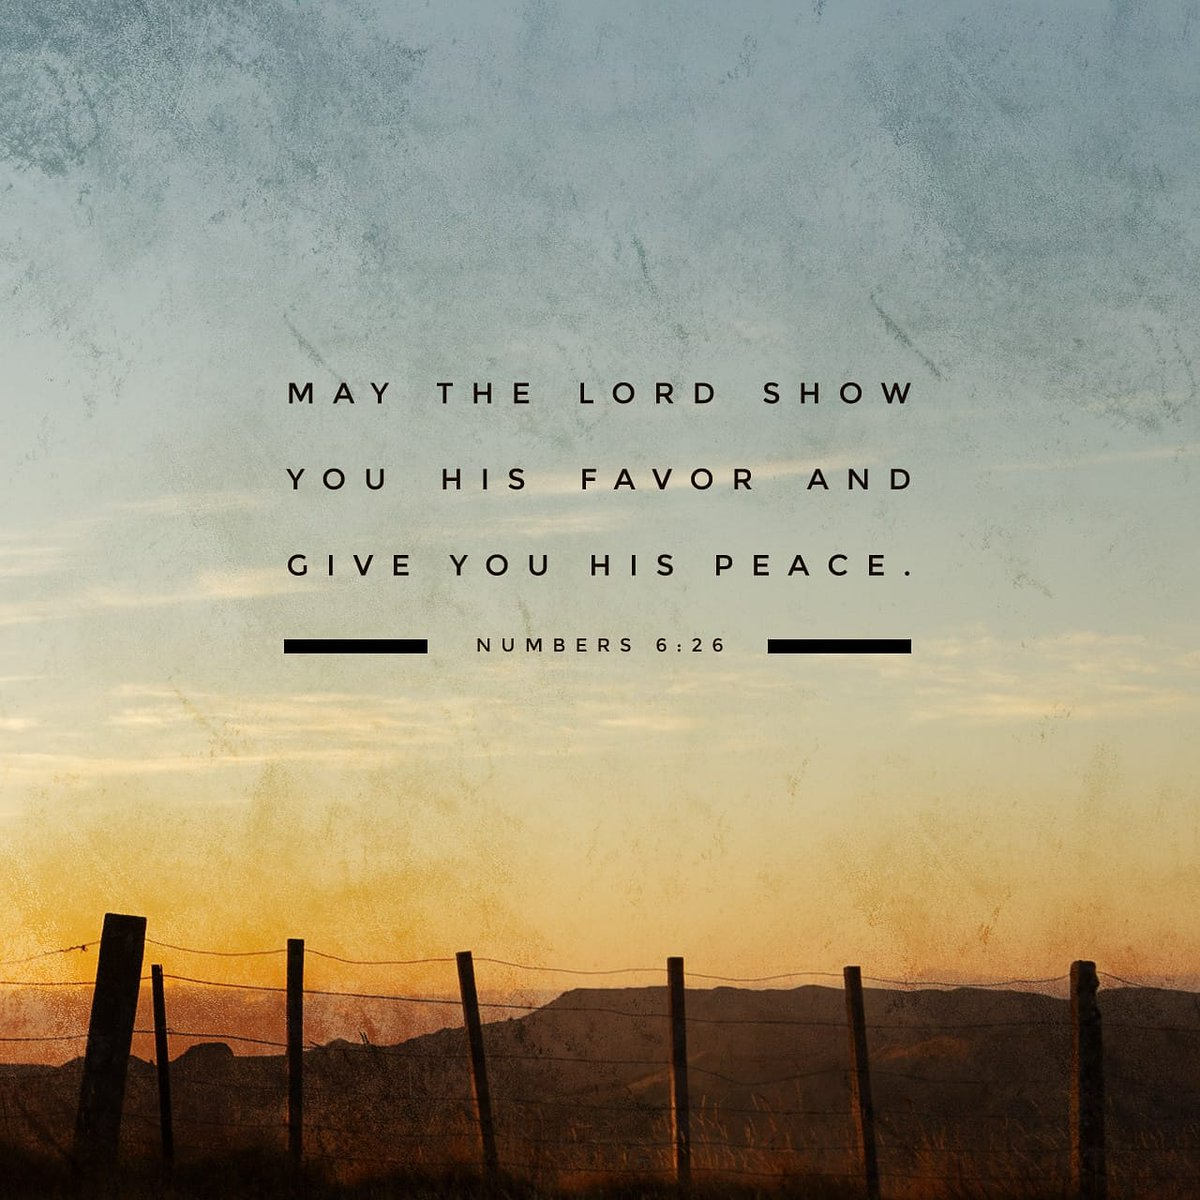 The Lord bless you and keep you! The Lord let his face shine upon you, and be gracious to you! The Lord look upon you kindly and give you peace! #Numbers 6:24-26 #wordofgod #verseoftheday #Jesus  #StayHome #StaySafe  #WeShallOvercome #GodBlessUsAll